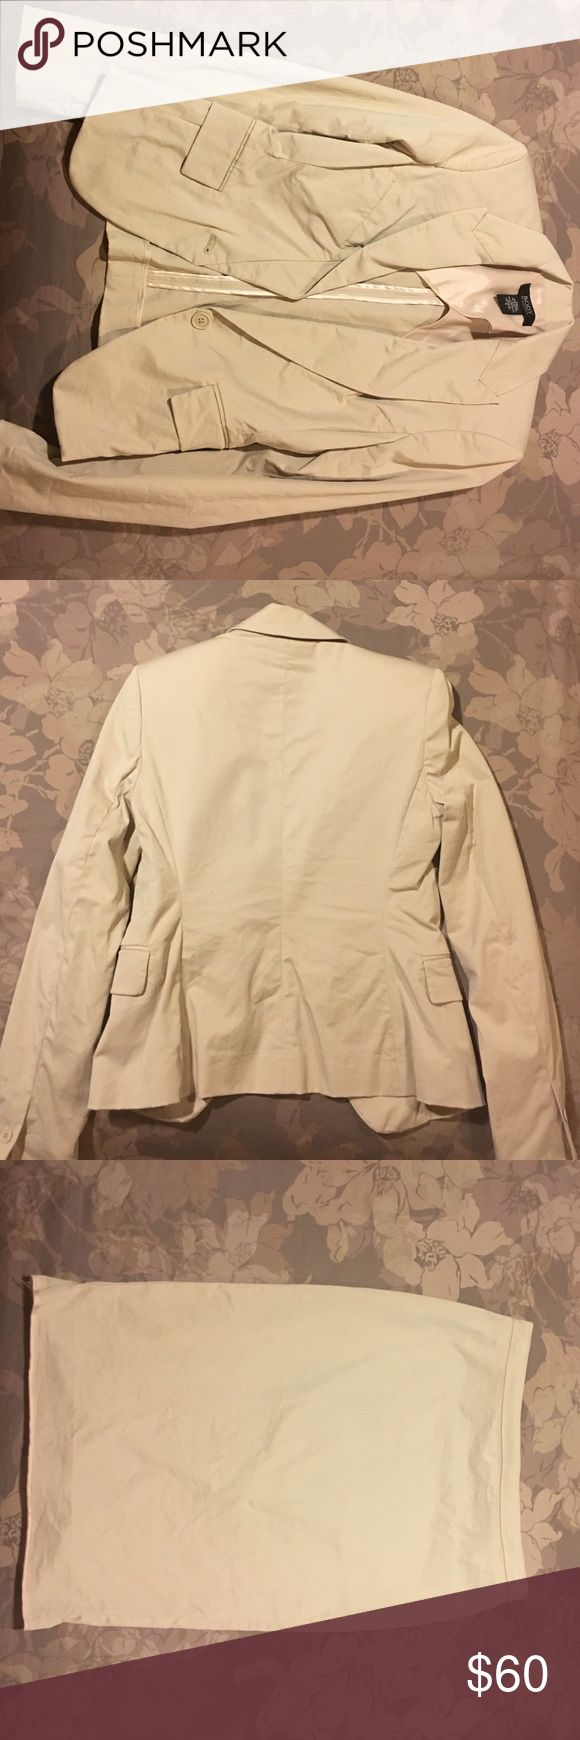 Women's Skirt Suit Only worn once, Body By Victoria Skirt suit.... The skirt is a pencil skirt and the jacket is a one button jacket... Victoria's Secret Skirts Pencil